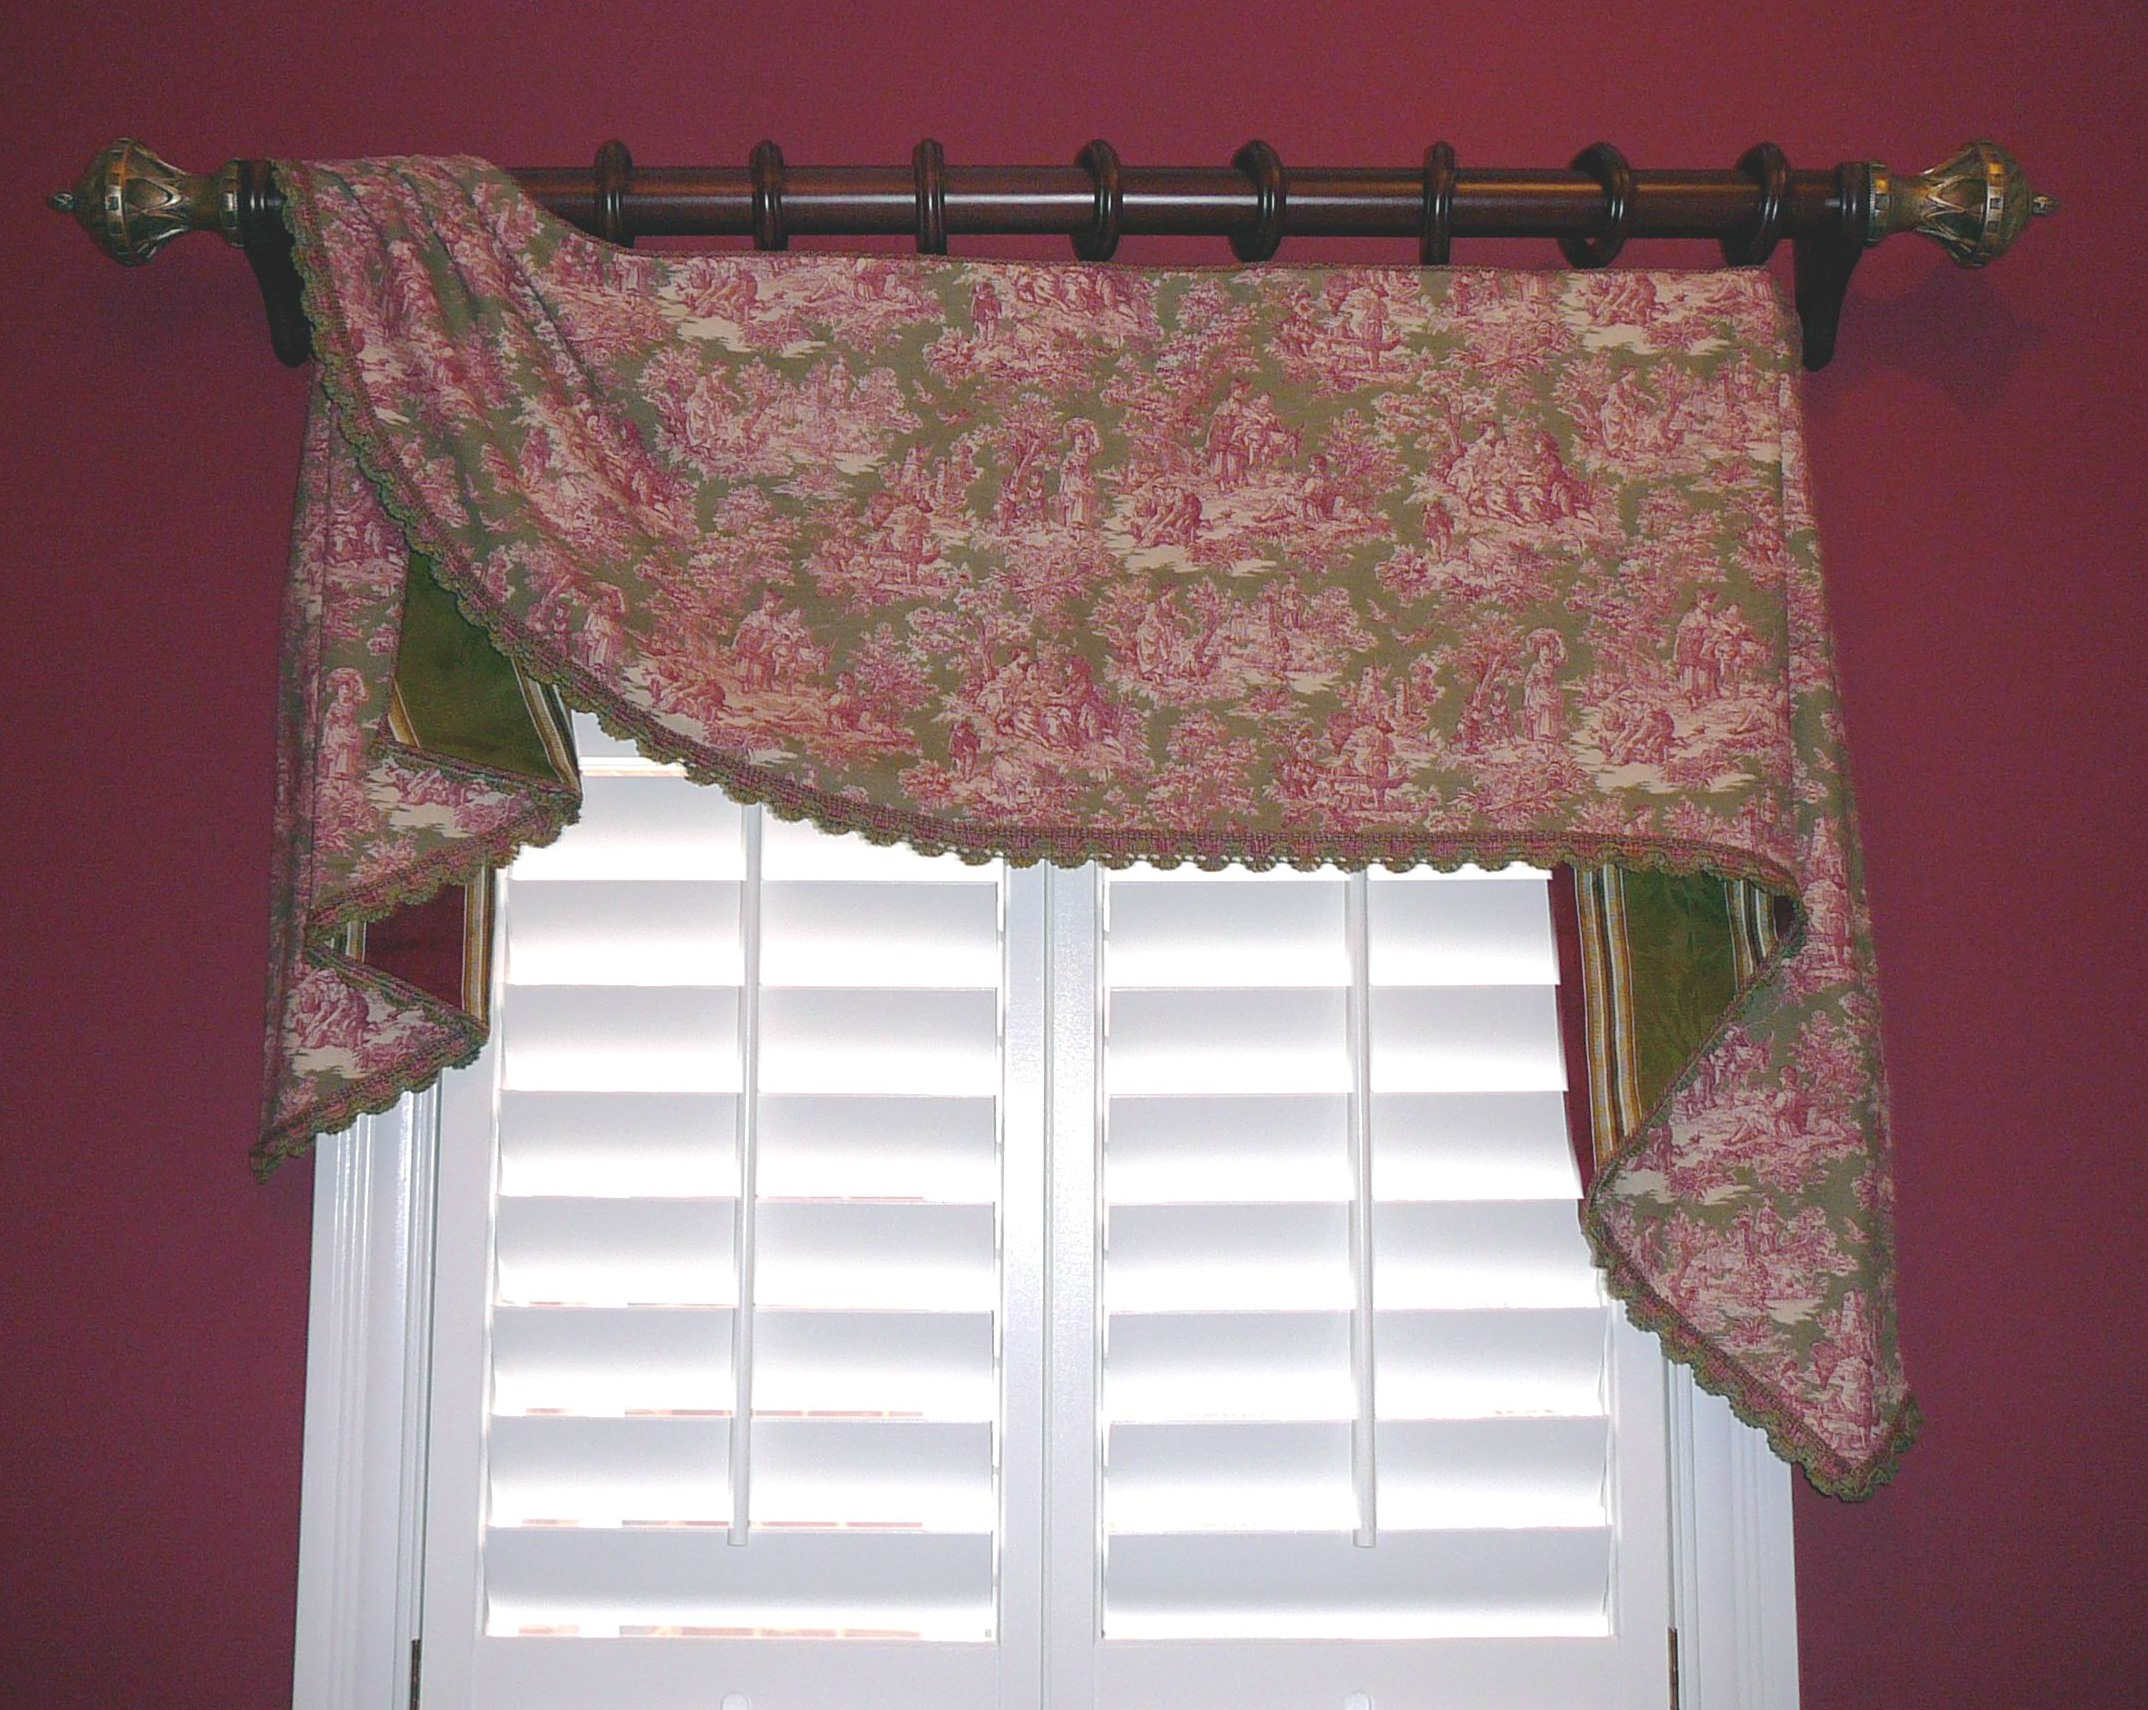 Image Result For Free Patterns For Curtain Valances